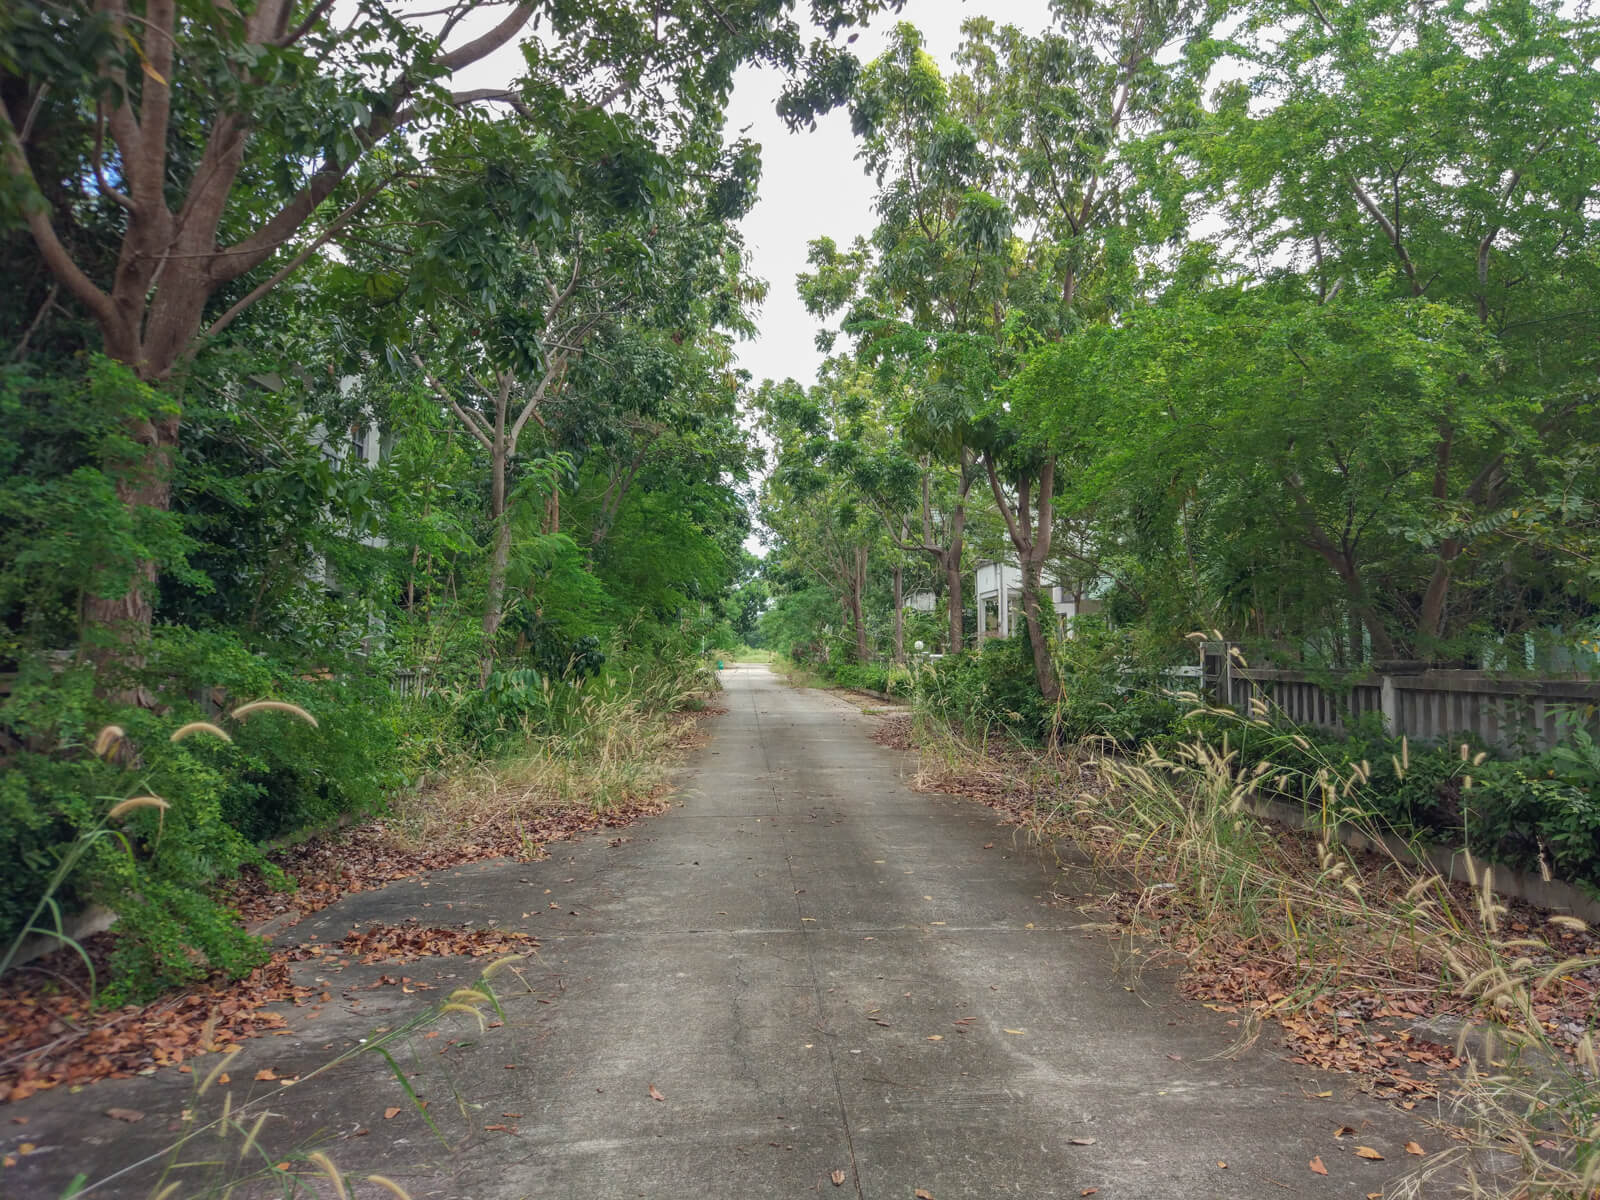 Overgrown road in Pricha Village in Rayong, Thailand